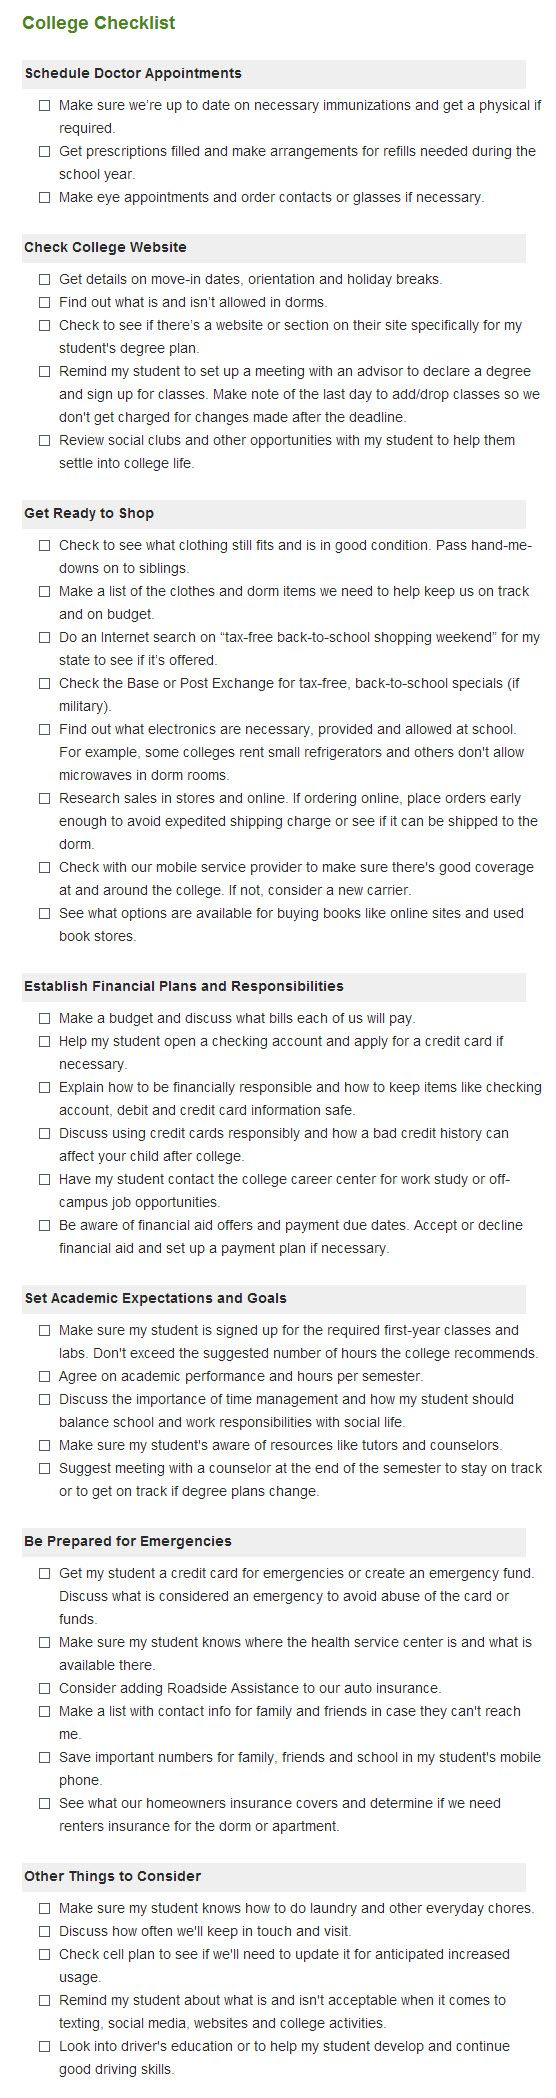 304 Best Military Family Financial Readiness Images On Pinterest